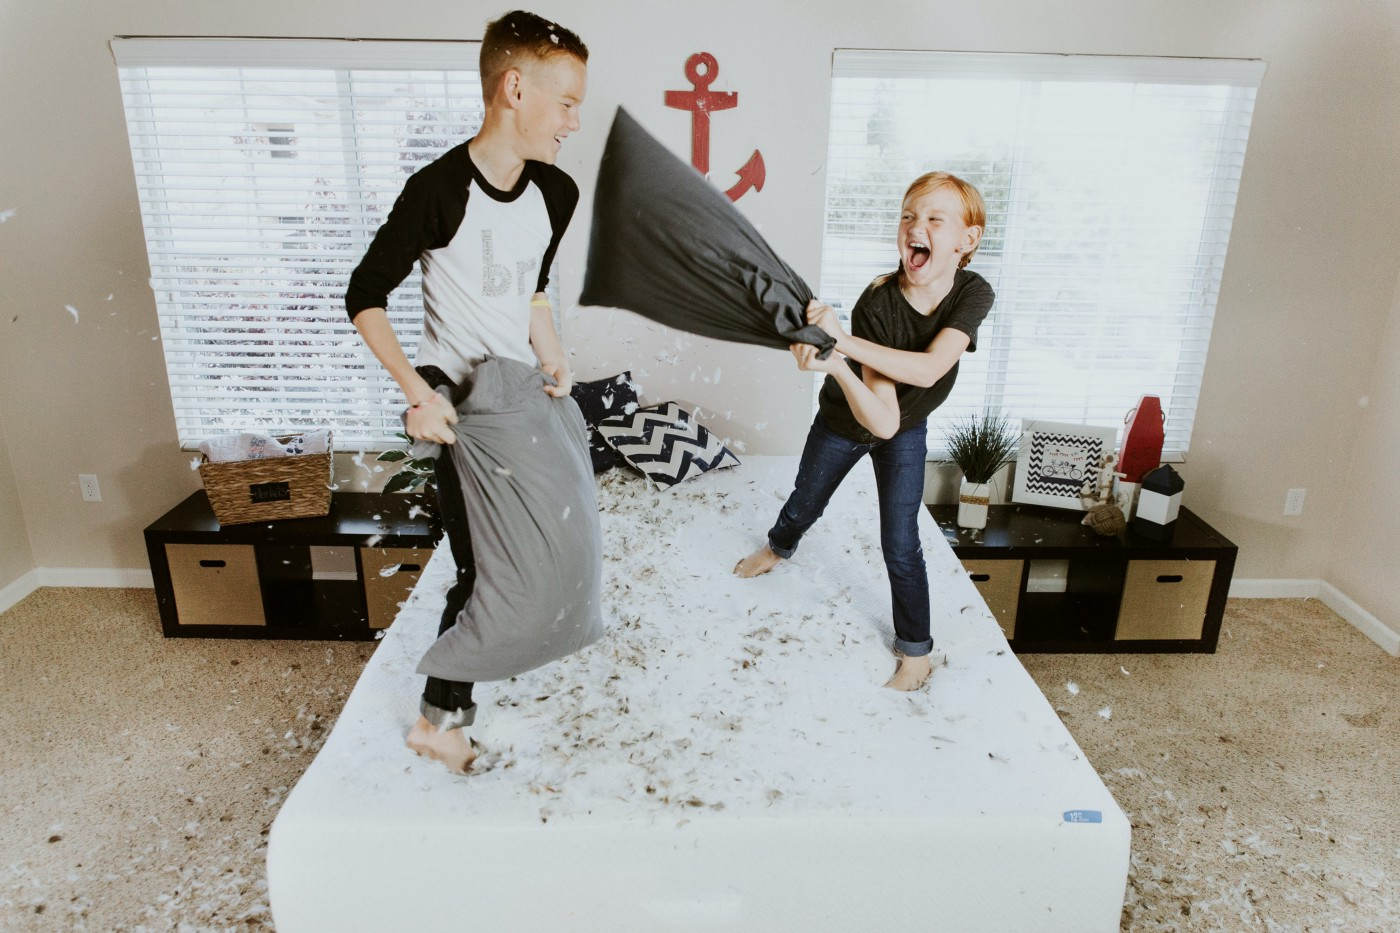 A boy and a girl having a pillow fight